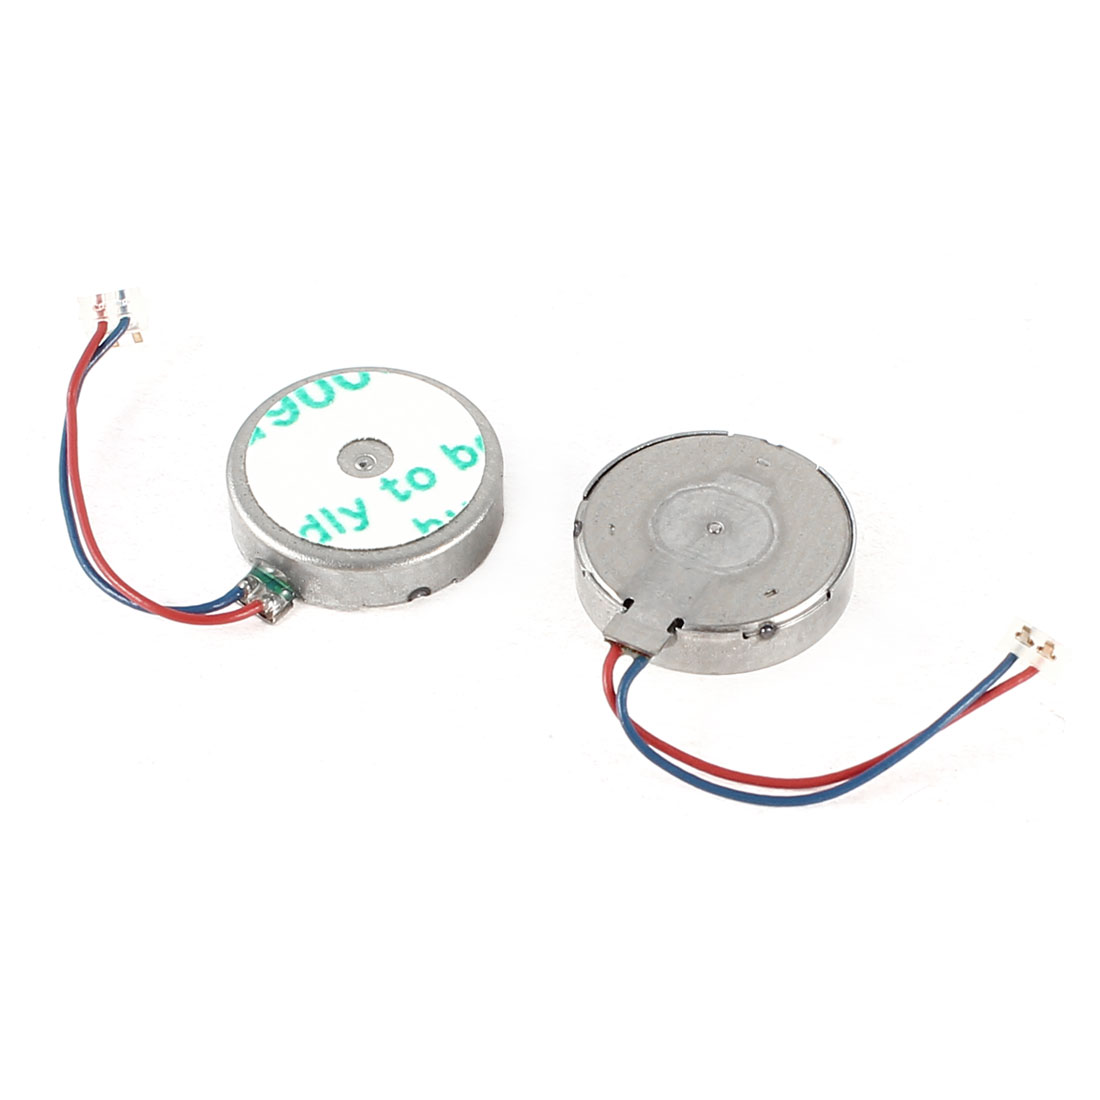 2-Pcs-DC-3V-14mm-x-3-7mm-Cell-Phone-Coin-Flat-Vibrating-Vibration-Mini-Motor